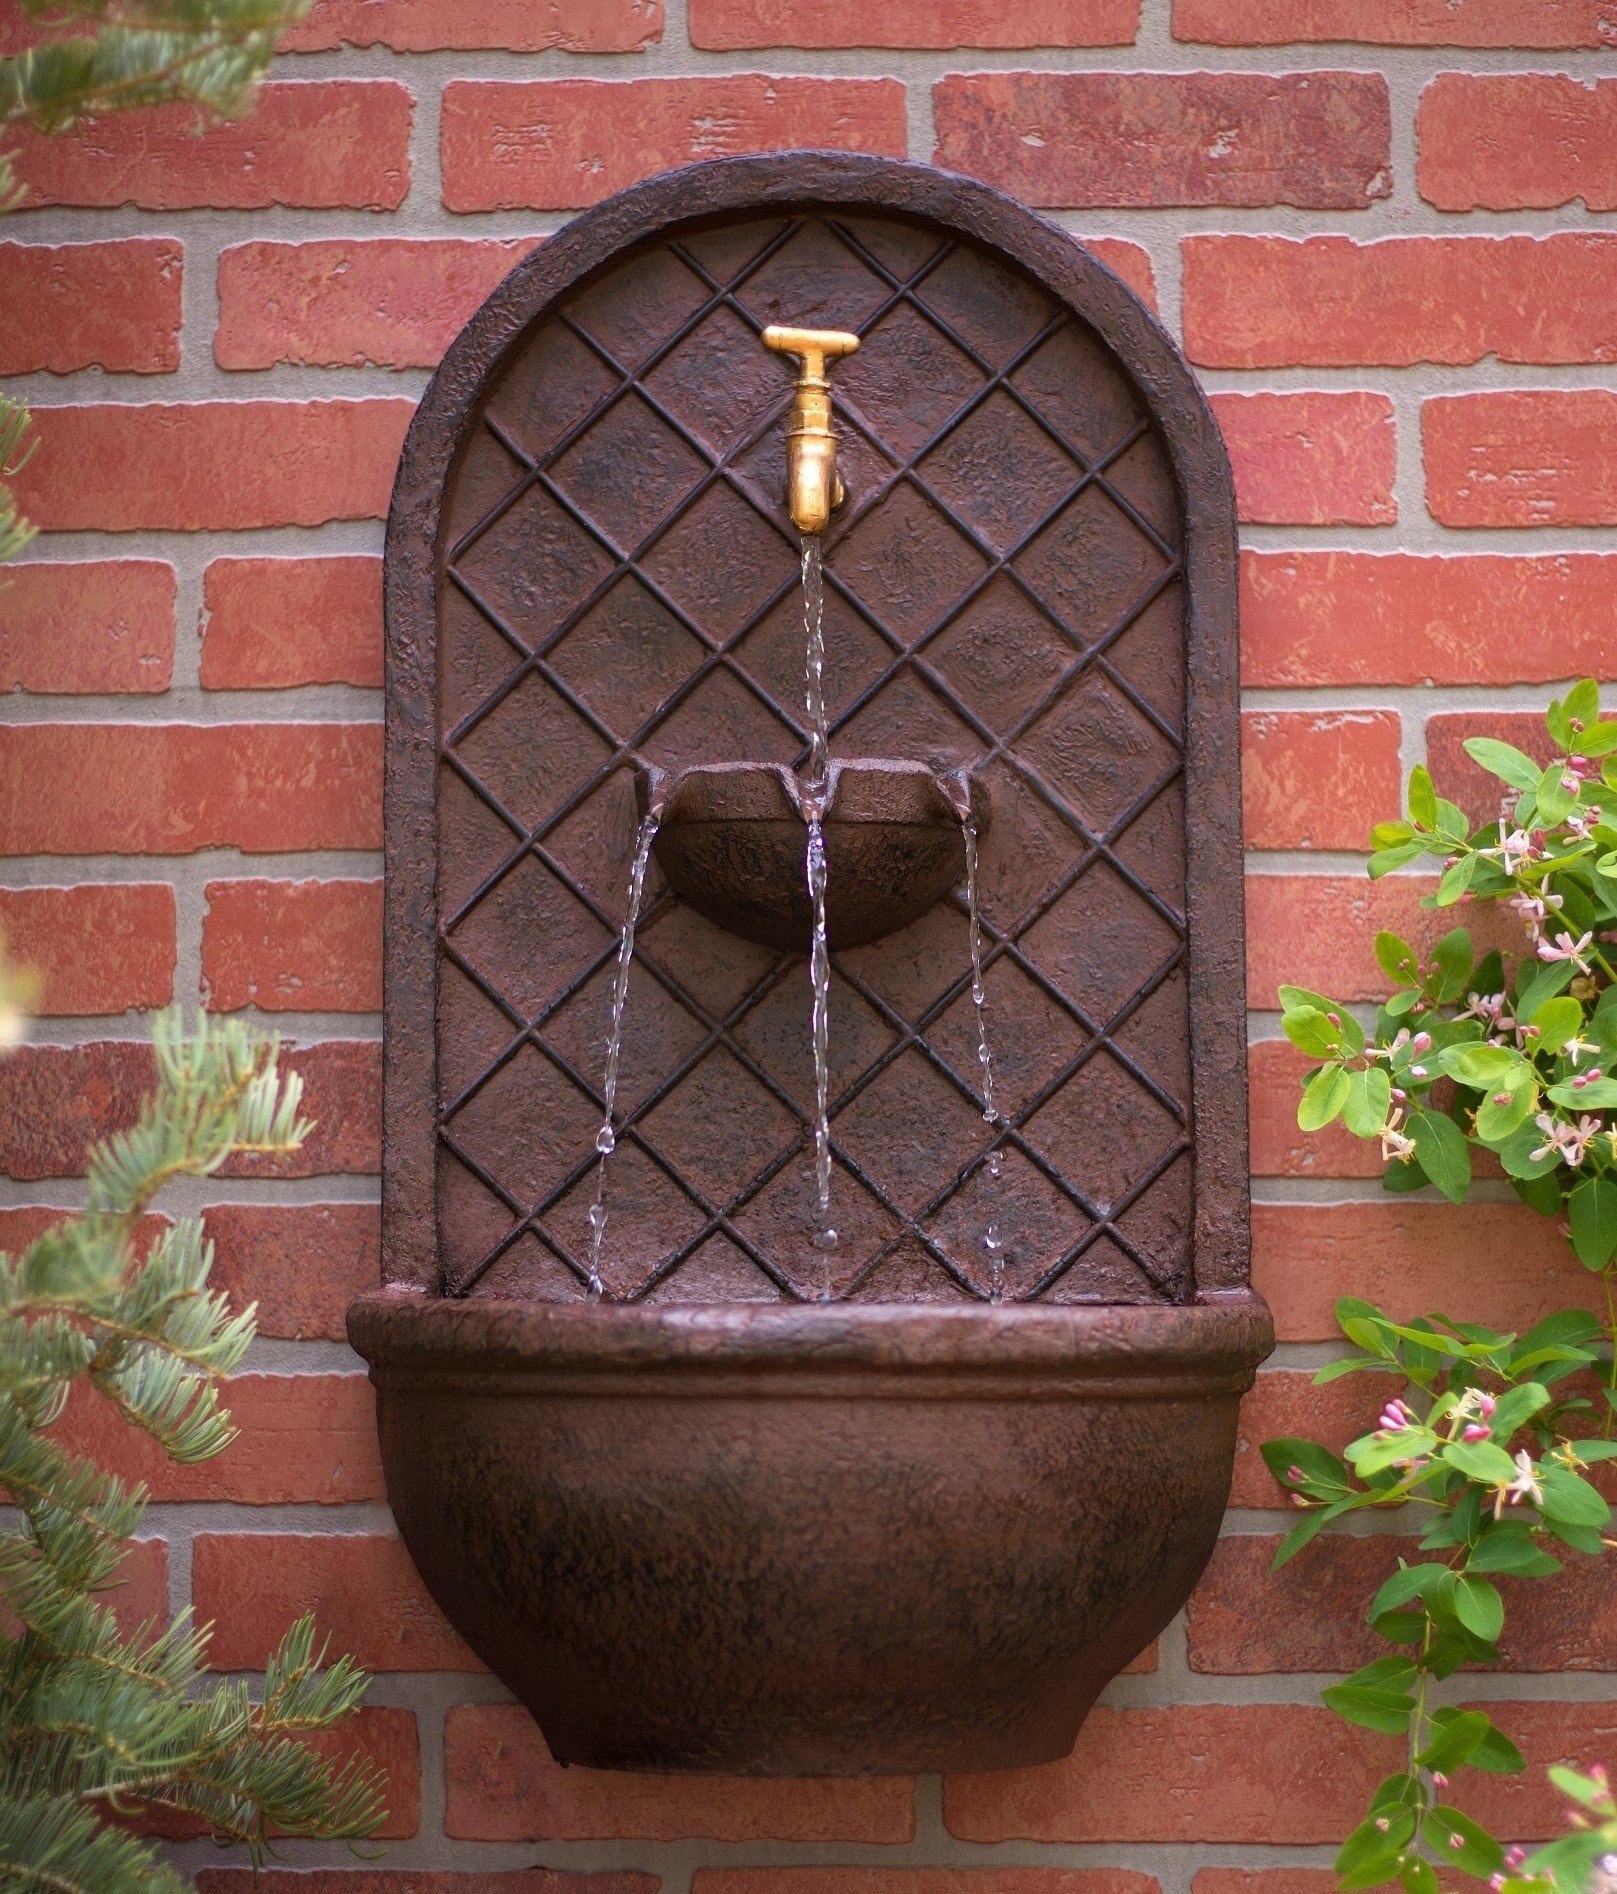 The Milano - Outdoor Wall Fountain - Weathered Bronze Finish - Water Feature for Garden, Patio and Landscape Enhancement by Harmony Fountains